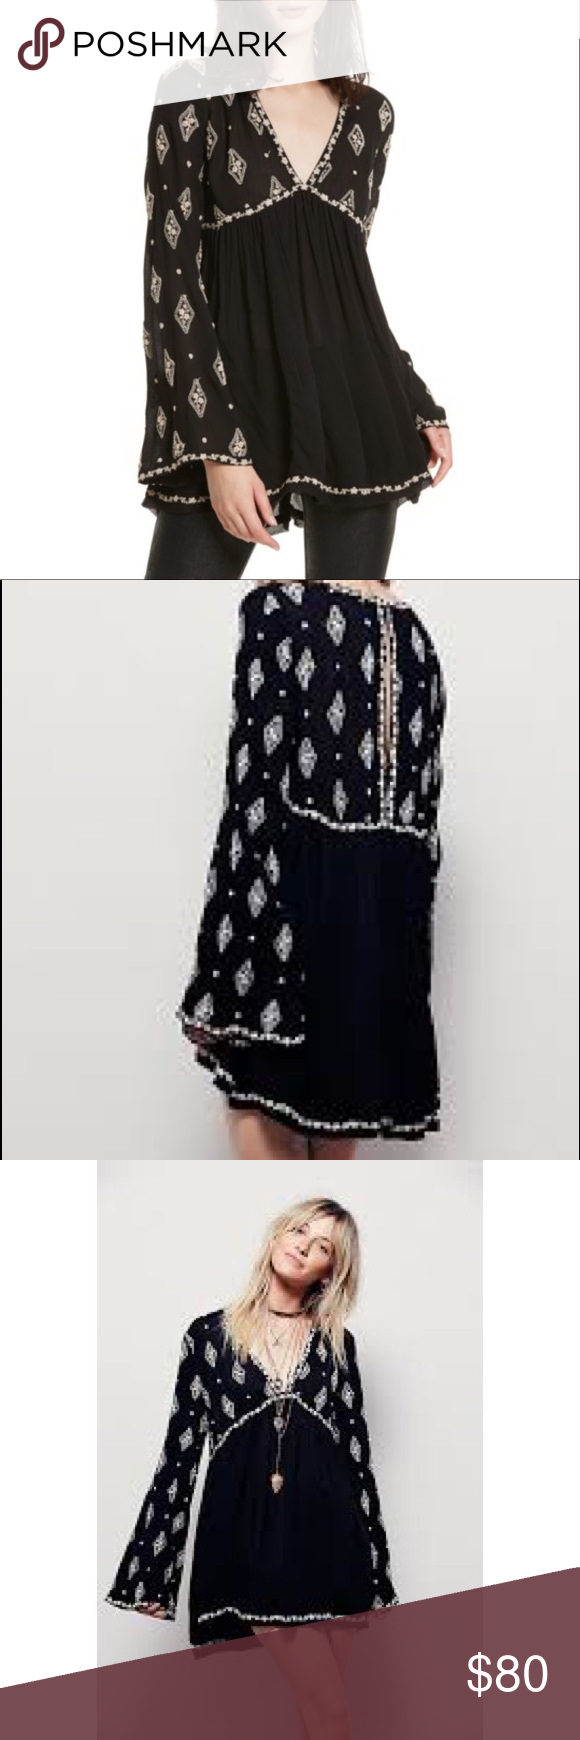 Free people diamond embroidered bell sleeve top nwt bell sleeve